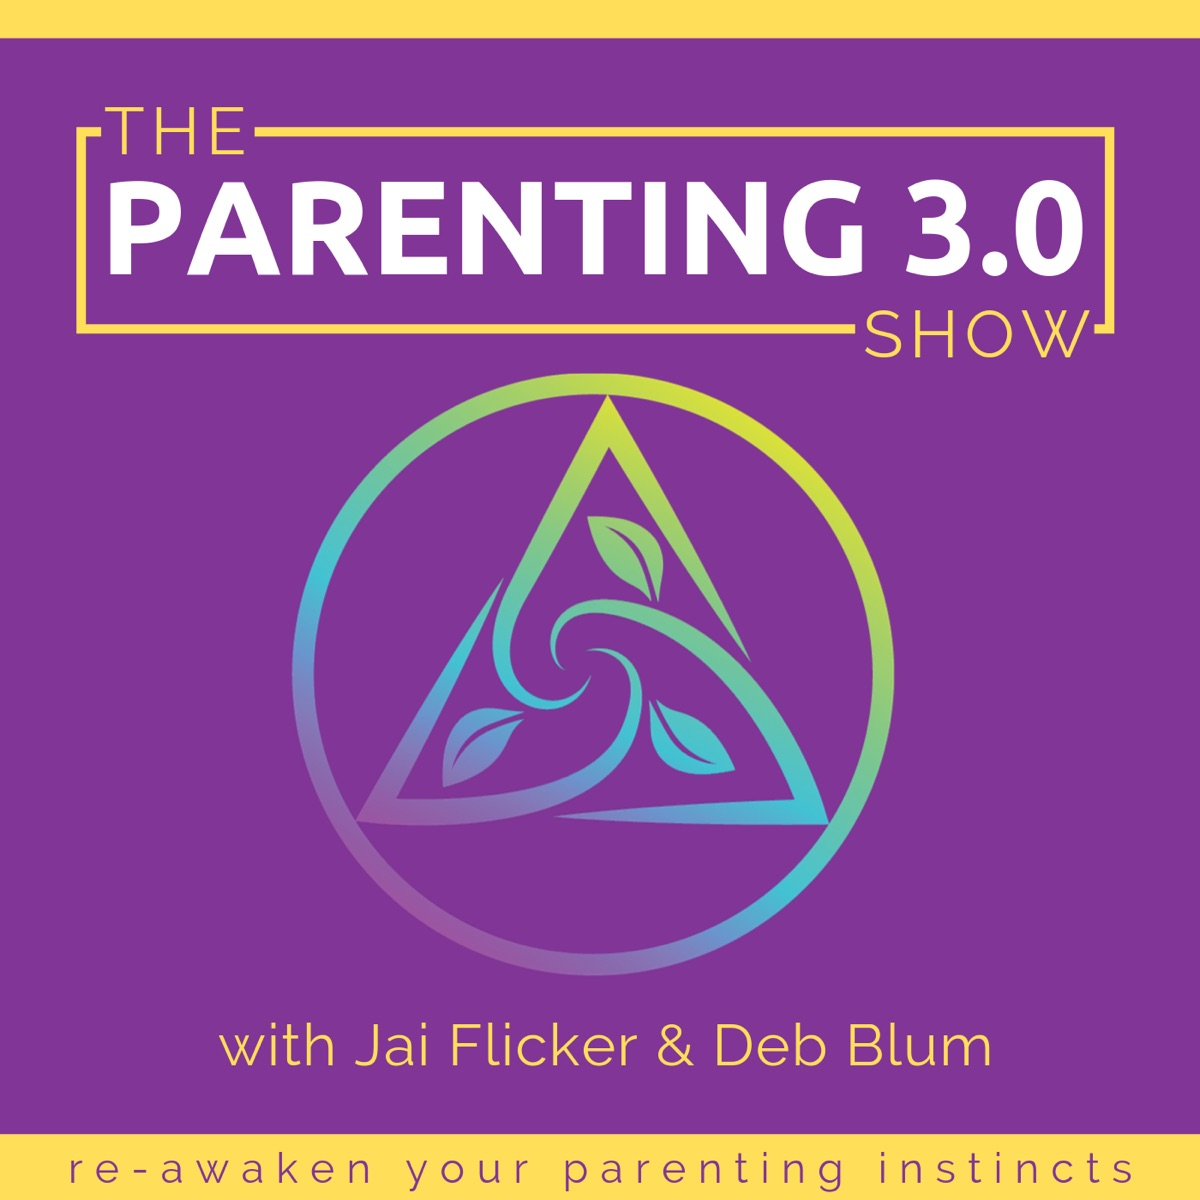 The Parenting 3.0 Show